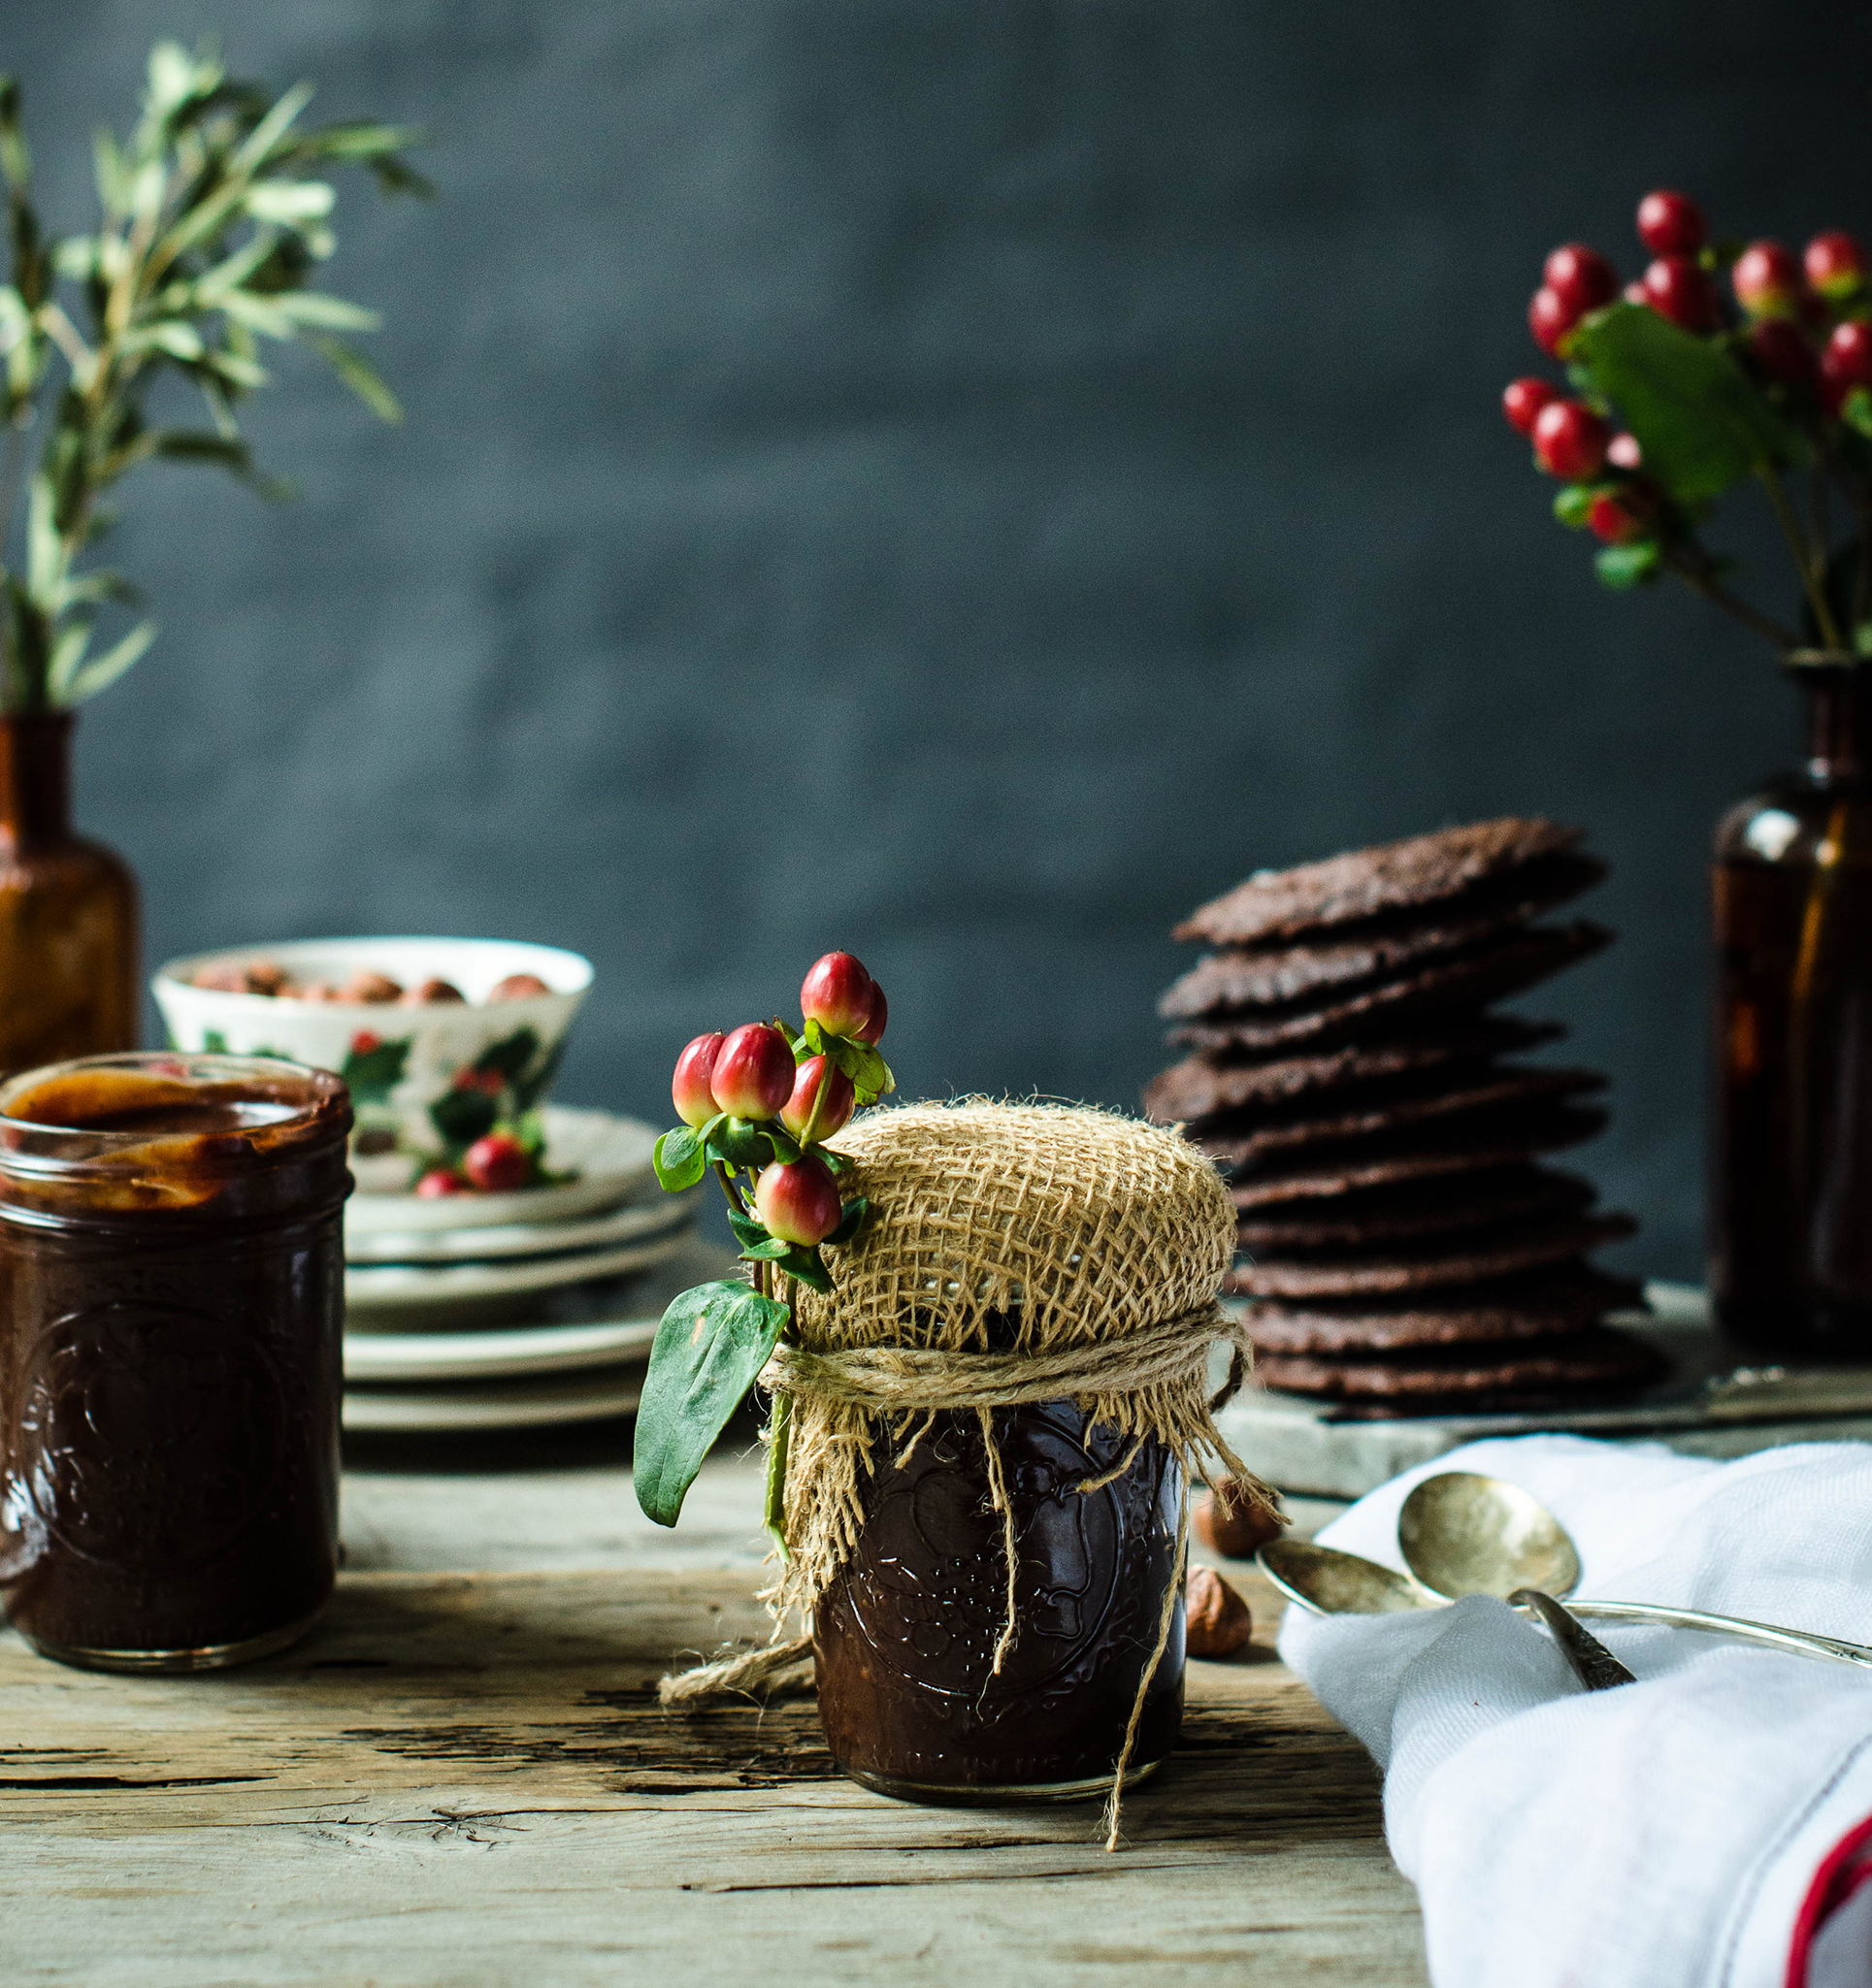 Make it giftable by wrapping a jar in burlap and twine and accenting it with winter berries.